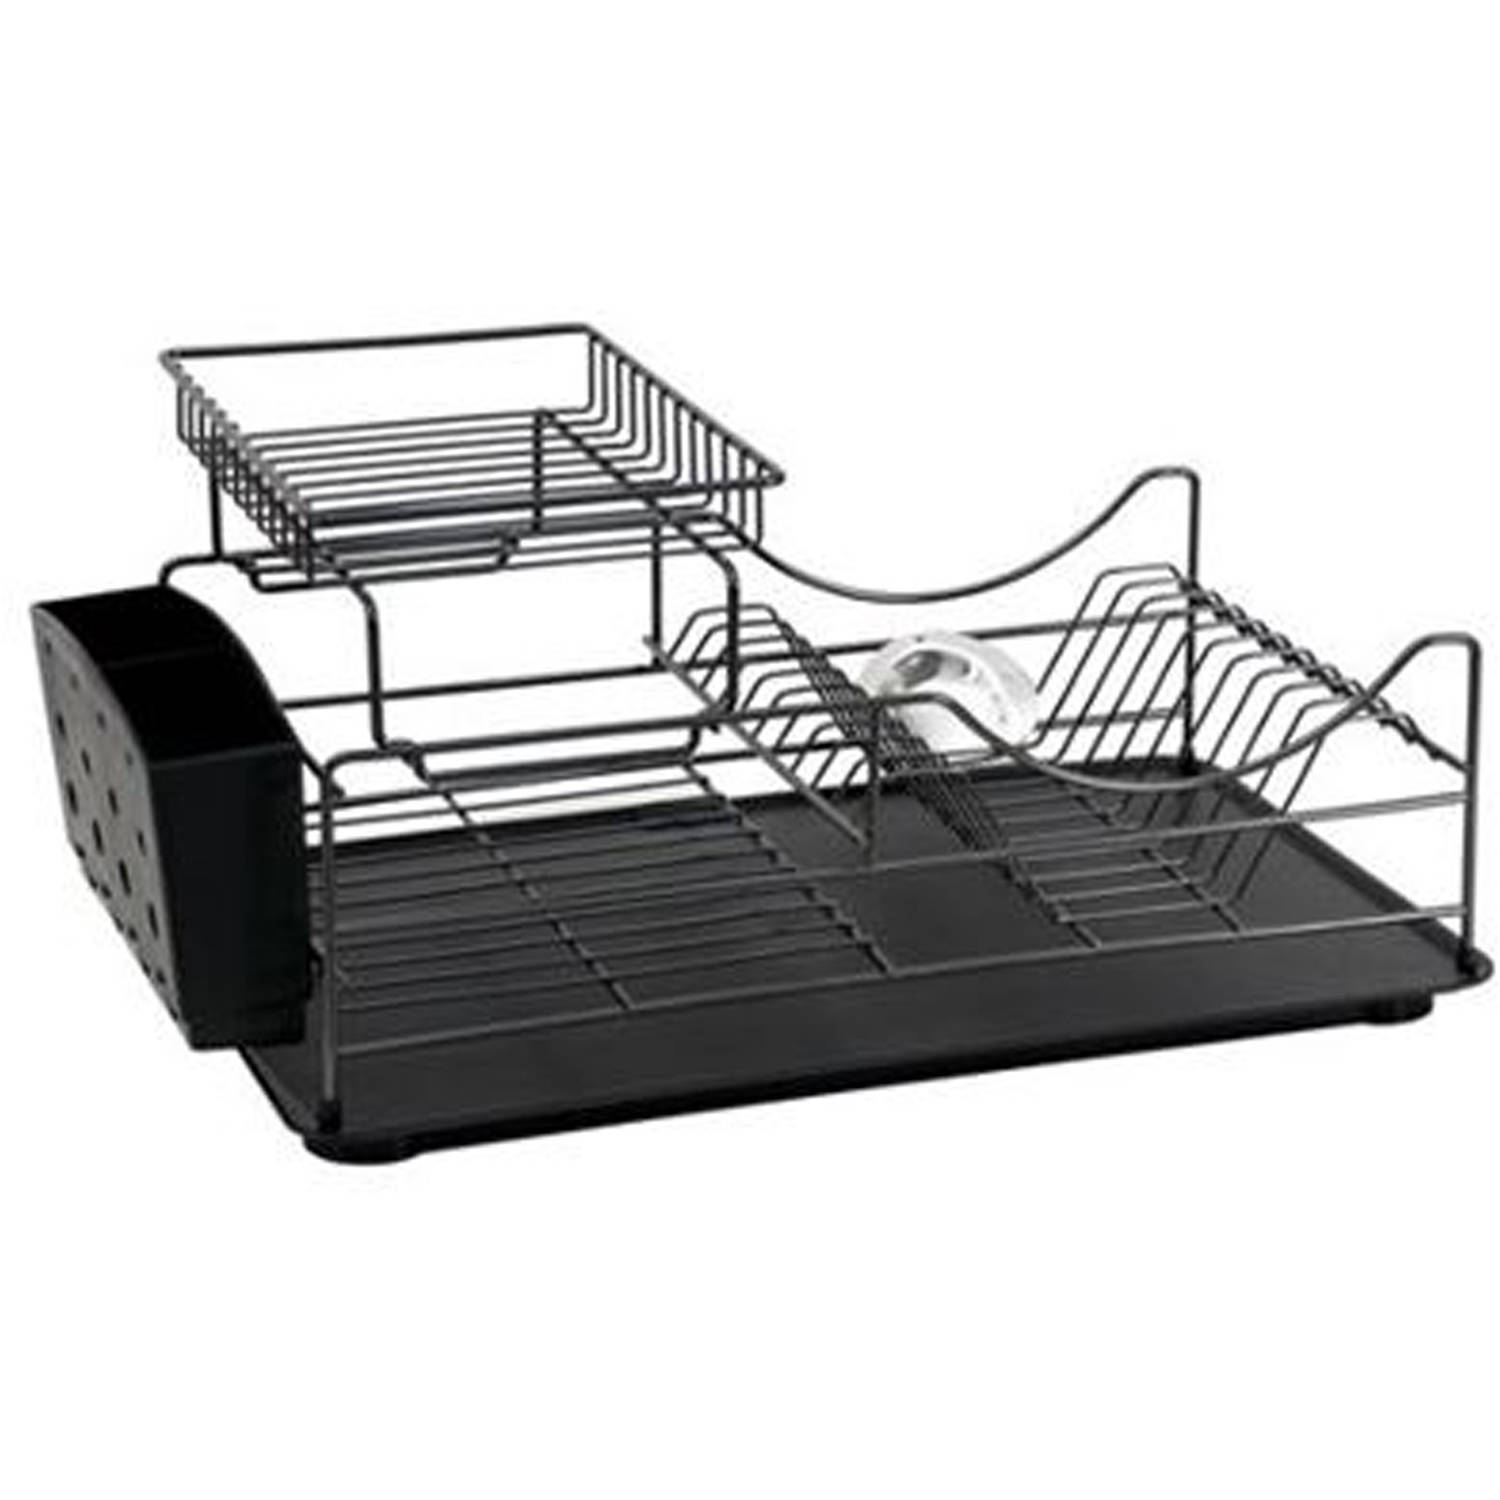 Better Homes and Gardens Black Powder Coated Wire Dish Rack by Lifetime Brands